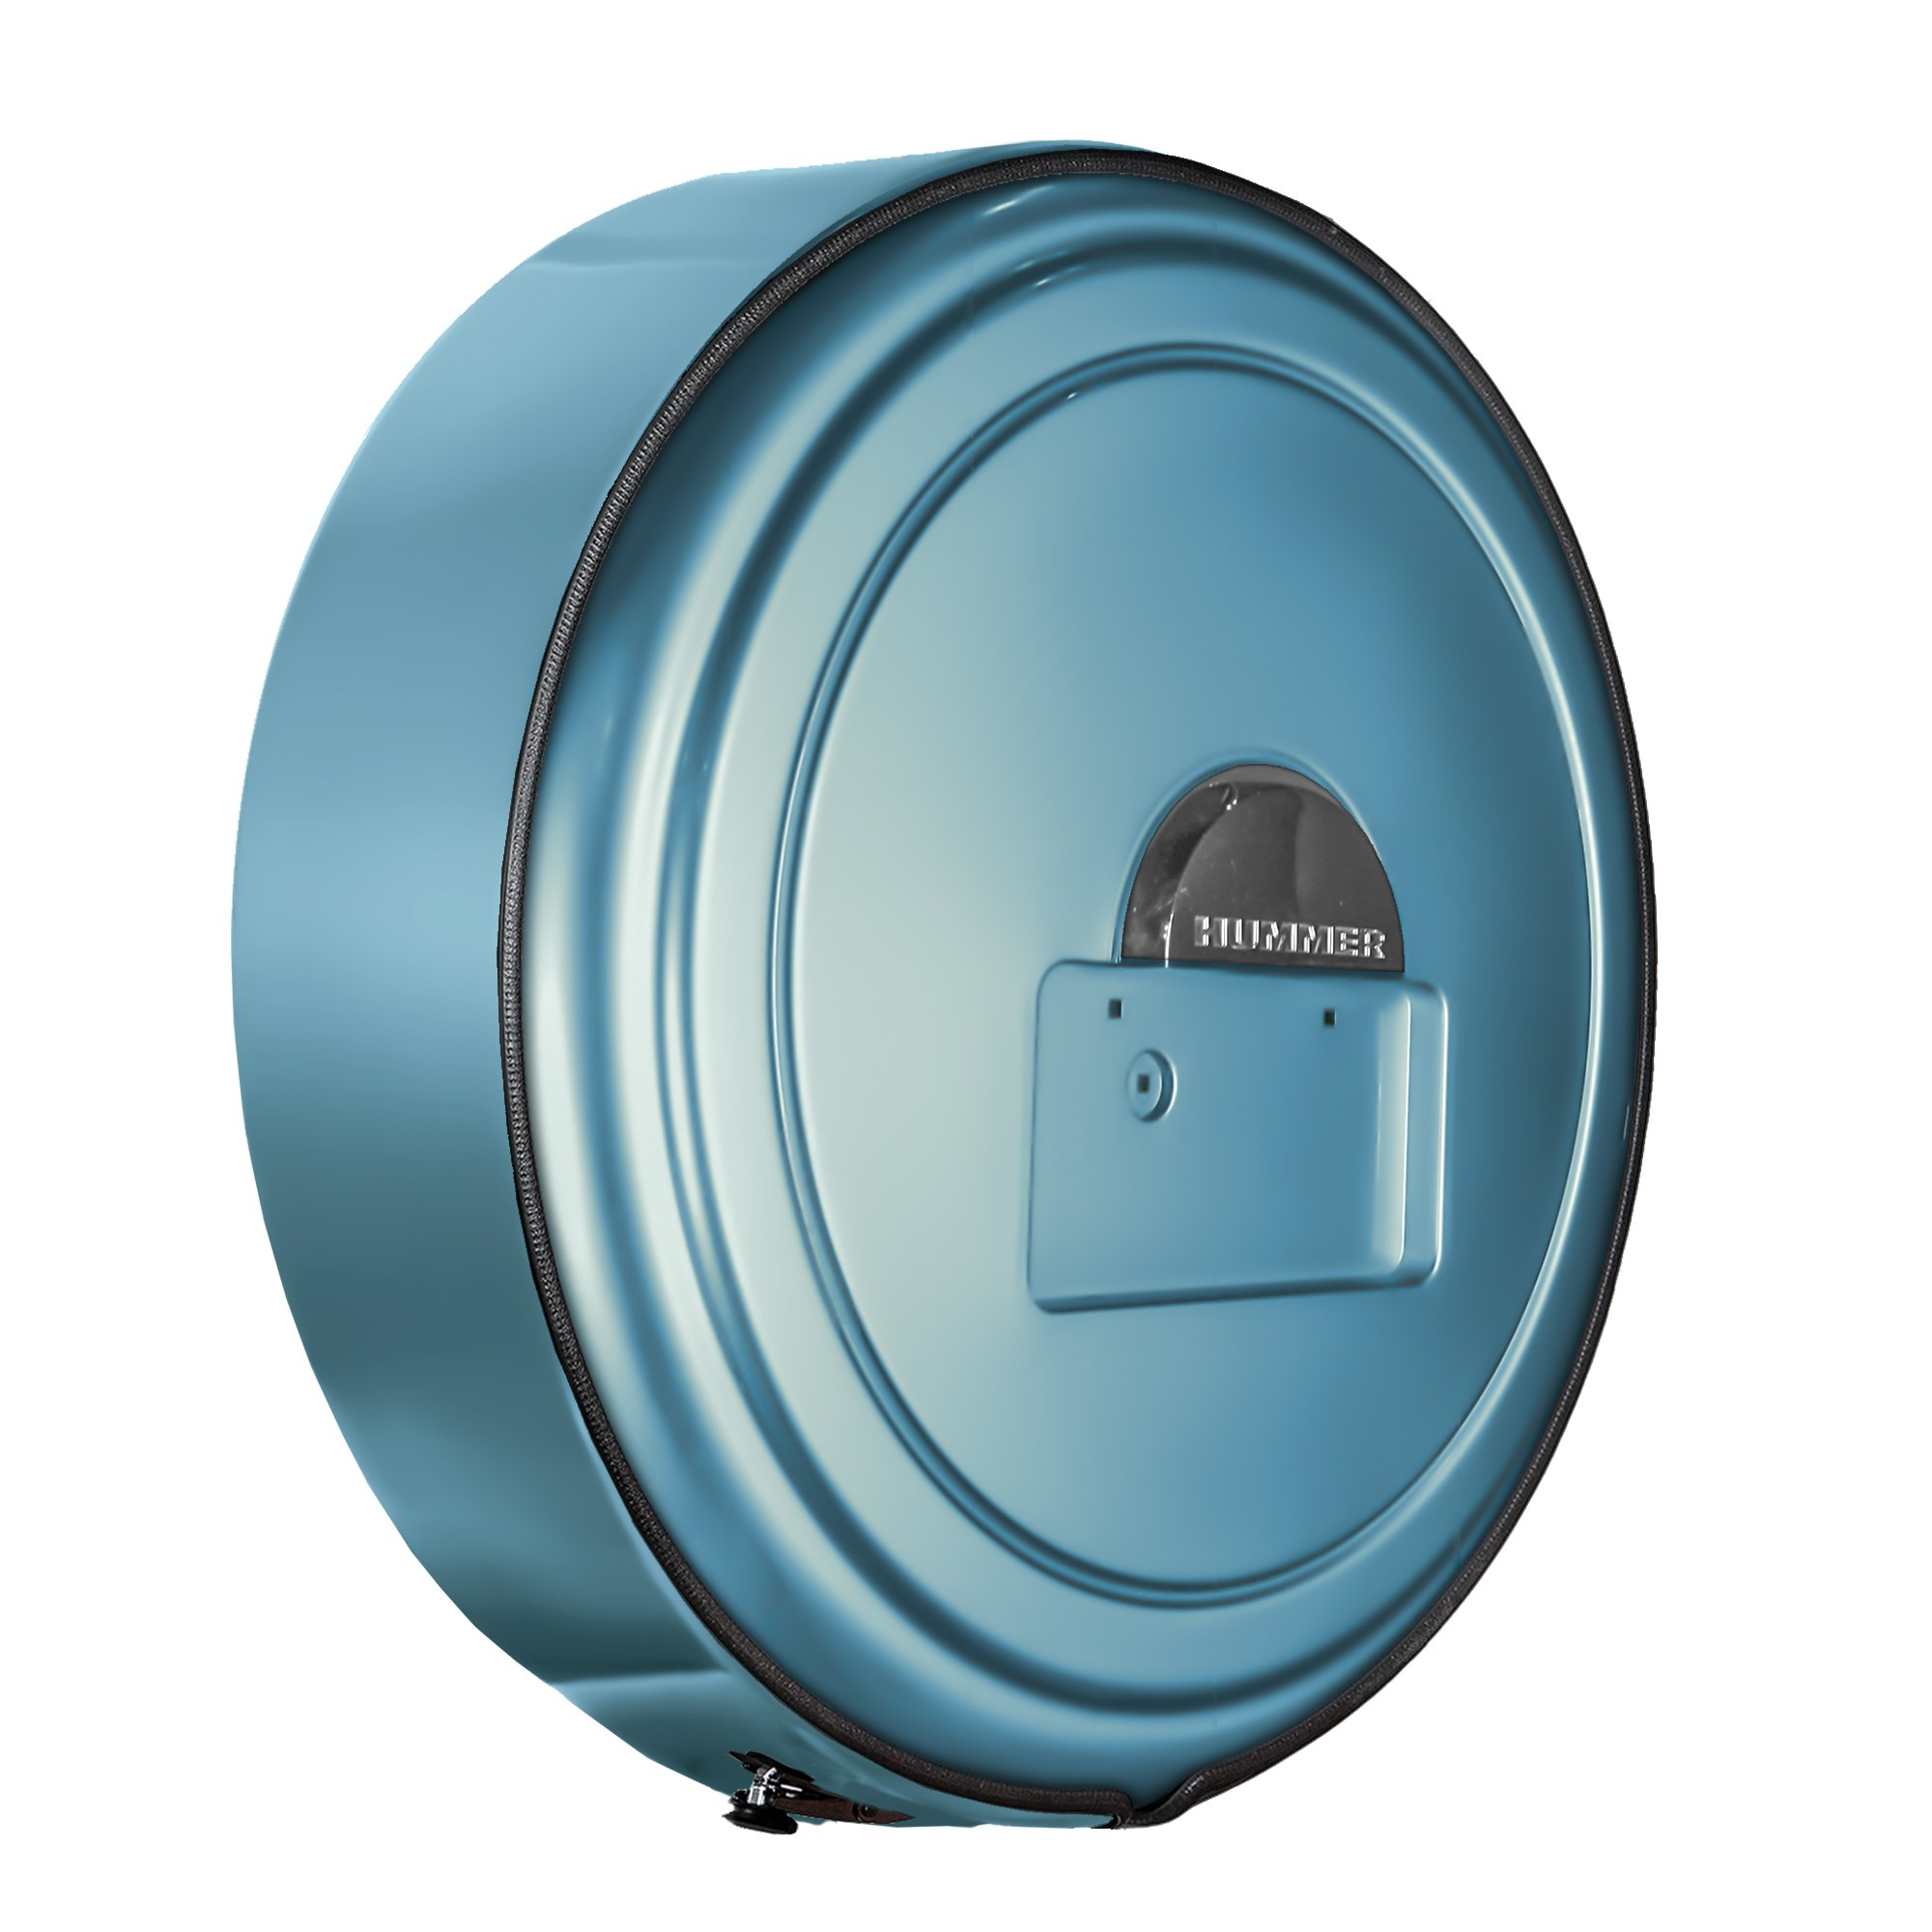 Hummer H2 (05-10) - Color Matched MasterSeries Hard Tire Cover - (Fully Painted Plastic Face & Stainless Steel Ring) - No Logo - Glacier Blue Metallic